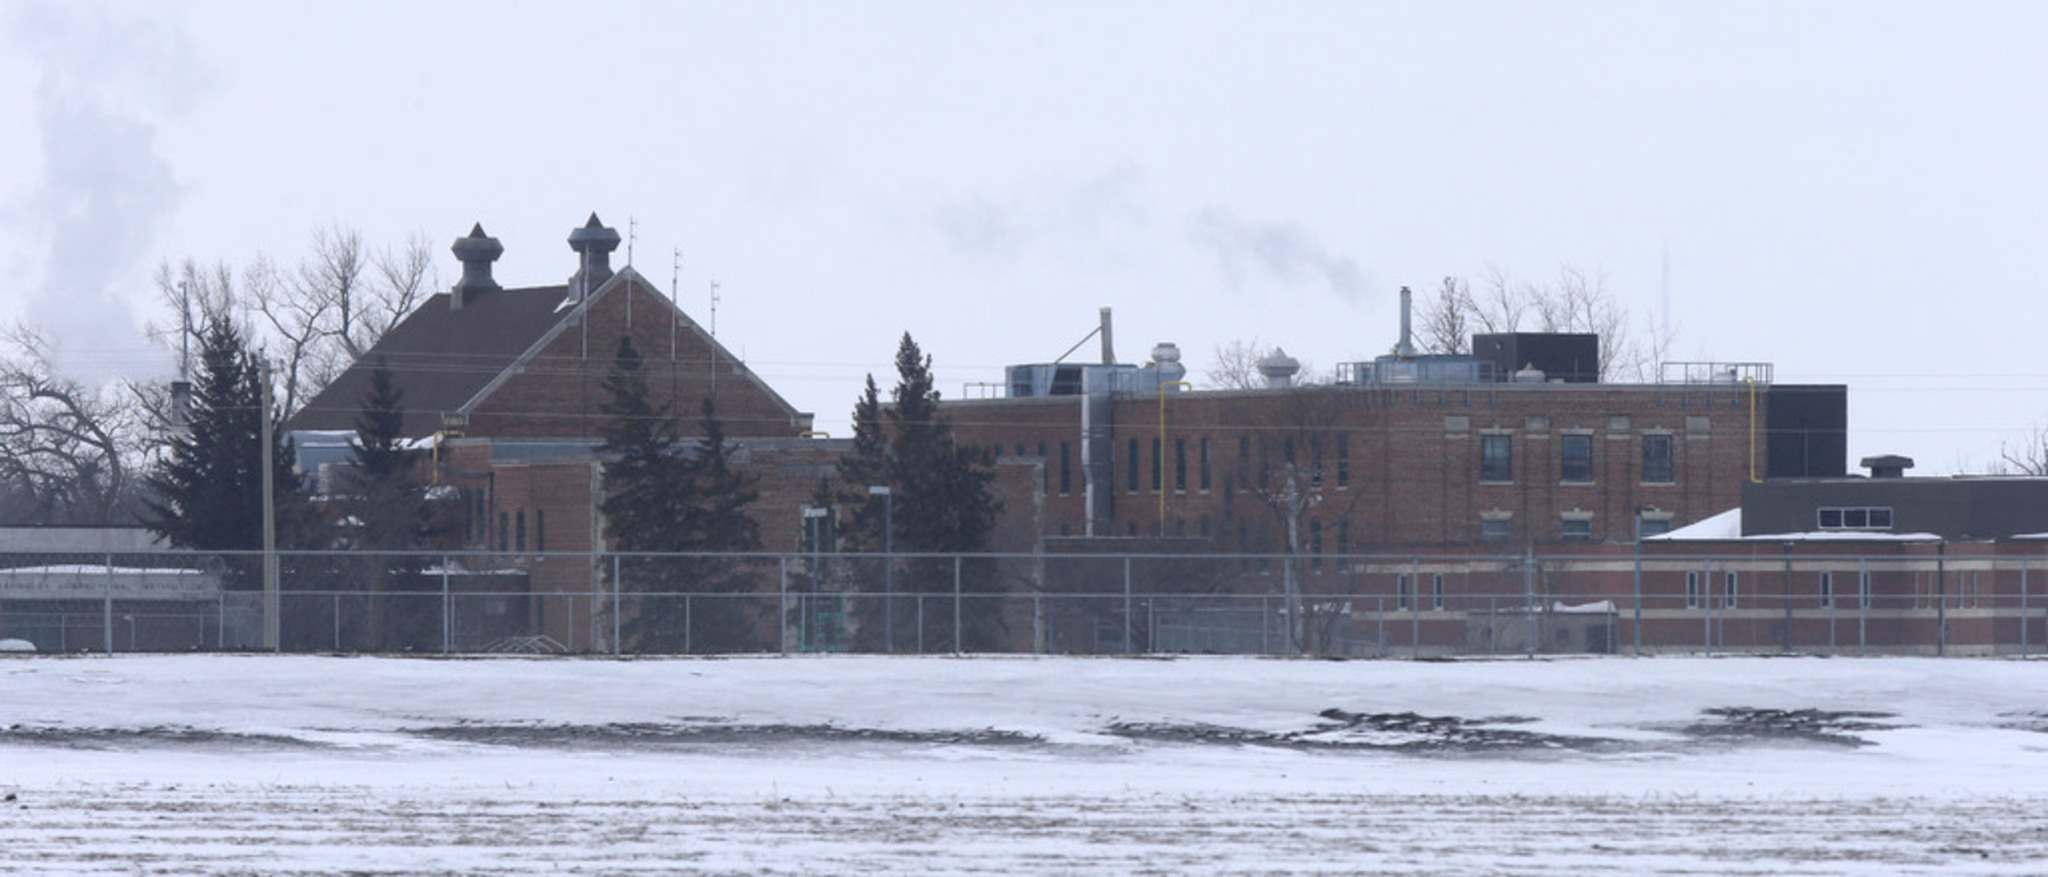 All new admissions to the province's jails, such as the Headingley Correctional Centre (above), will be isolated for 14 days at the Winnipeg Remand Centre. (Wayne Glowacki / Winnipeg Free Press files)</p>